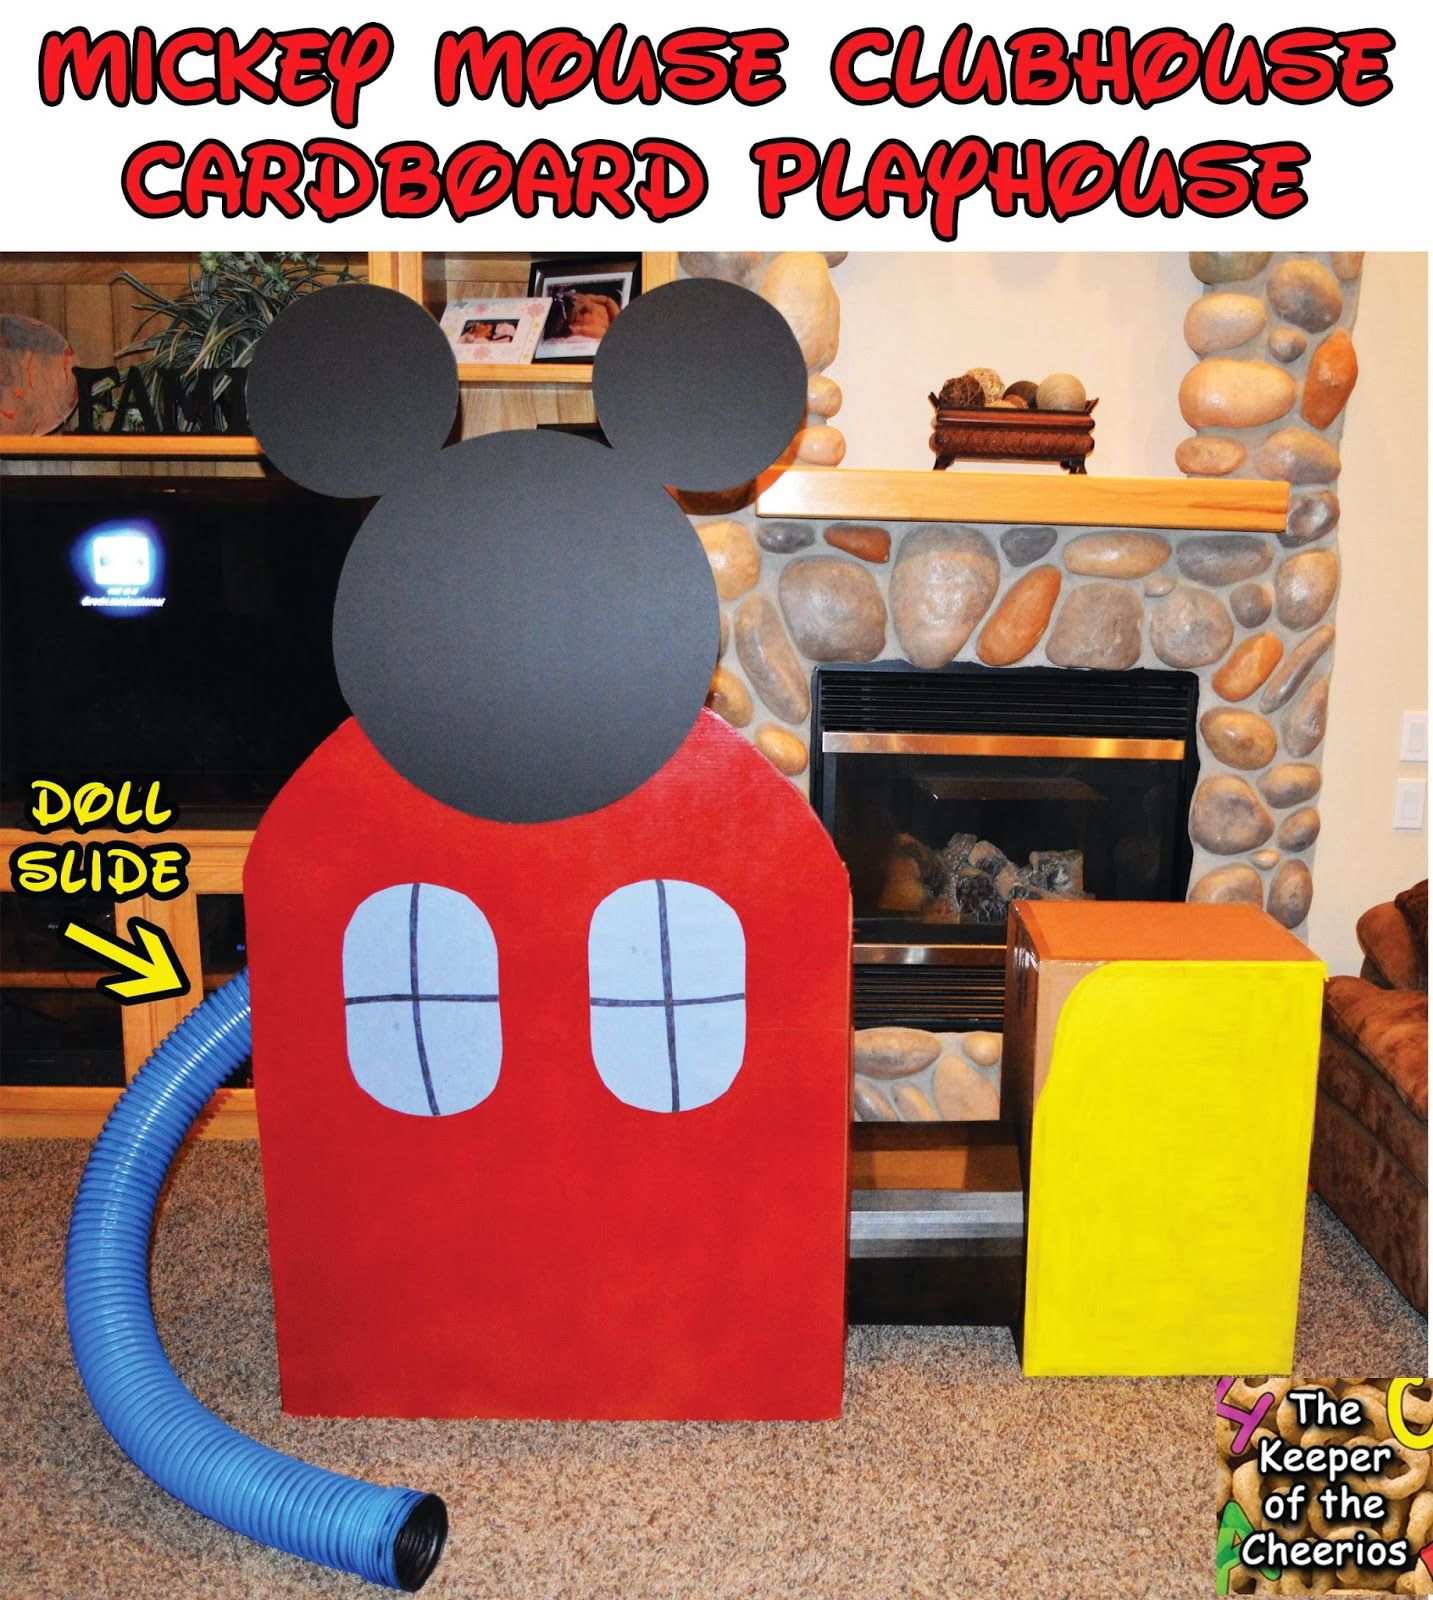 Do It Yourself Home Design: Mickey Mouse Clubhouse Cardboard Playhouse- Life Size